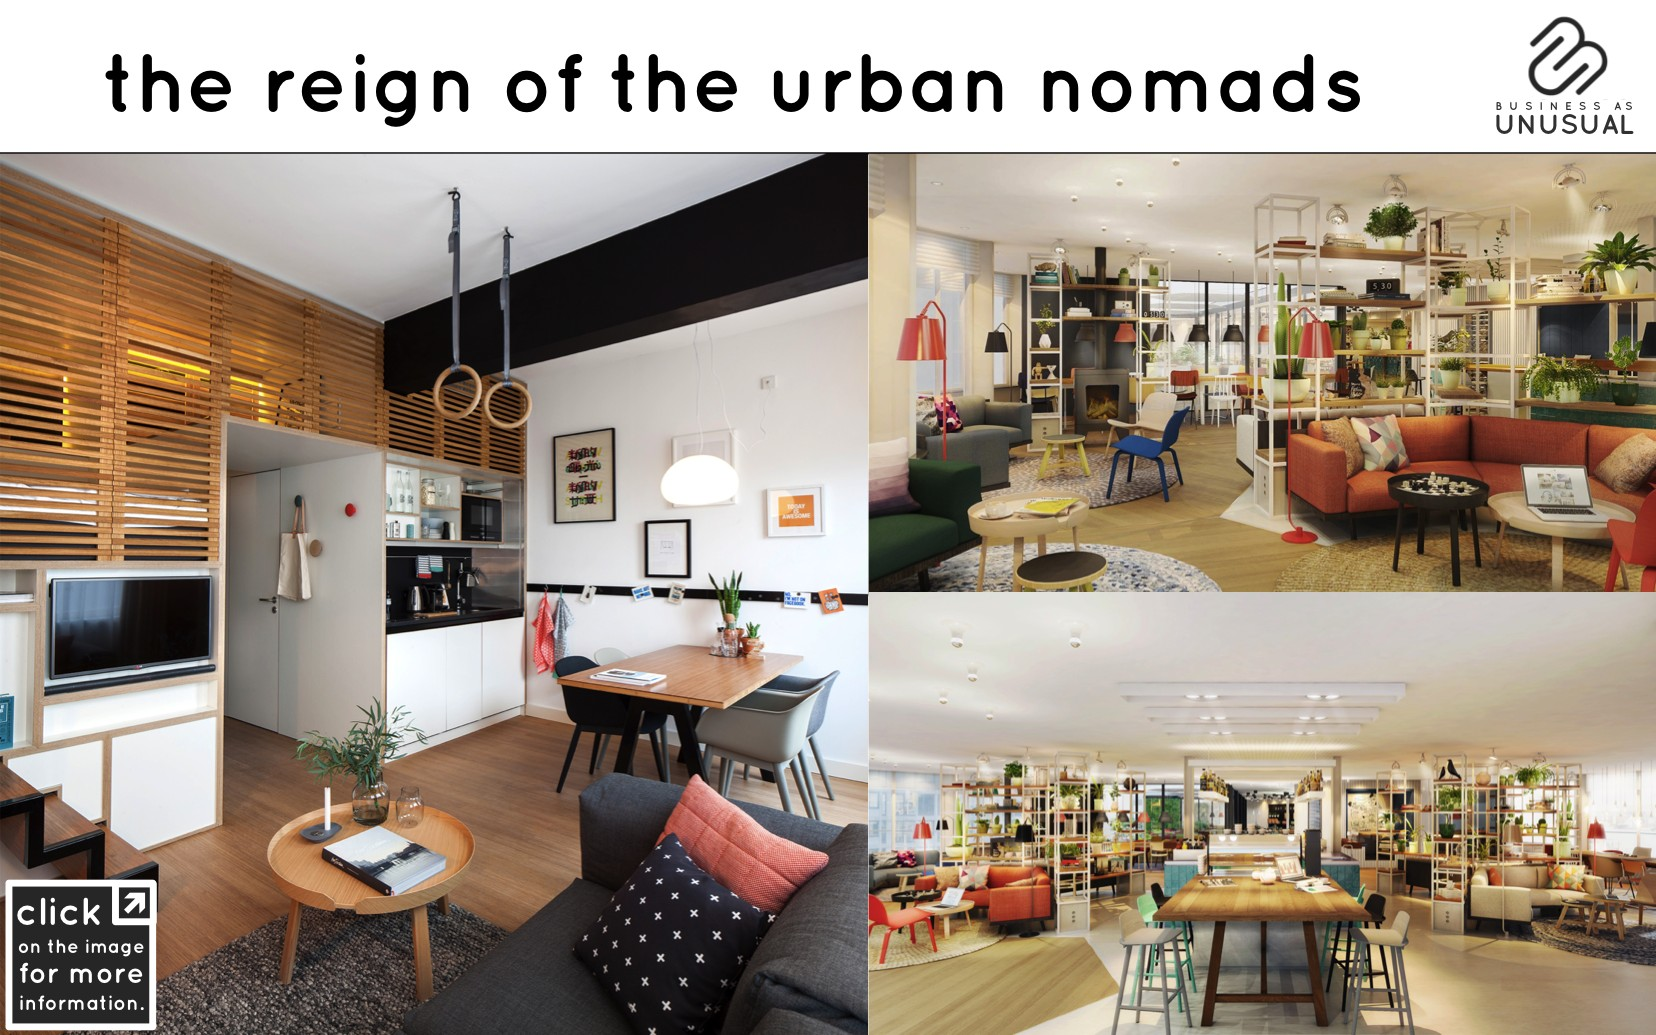 the reign of the urban nomads - zoku hotel